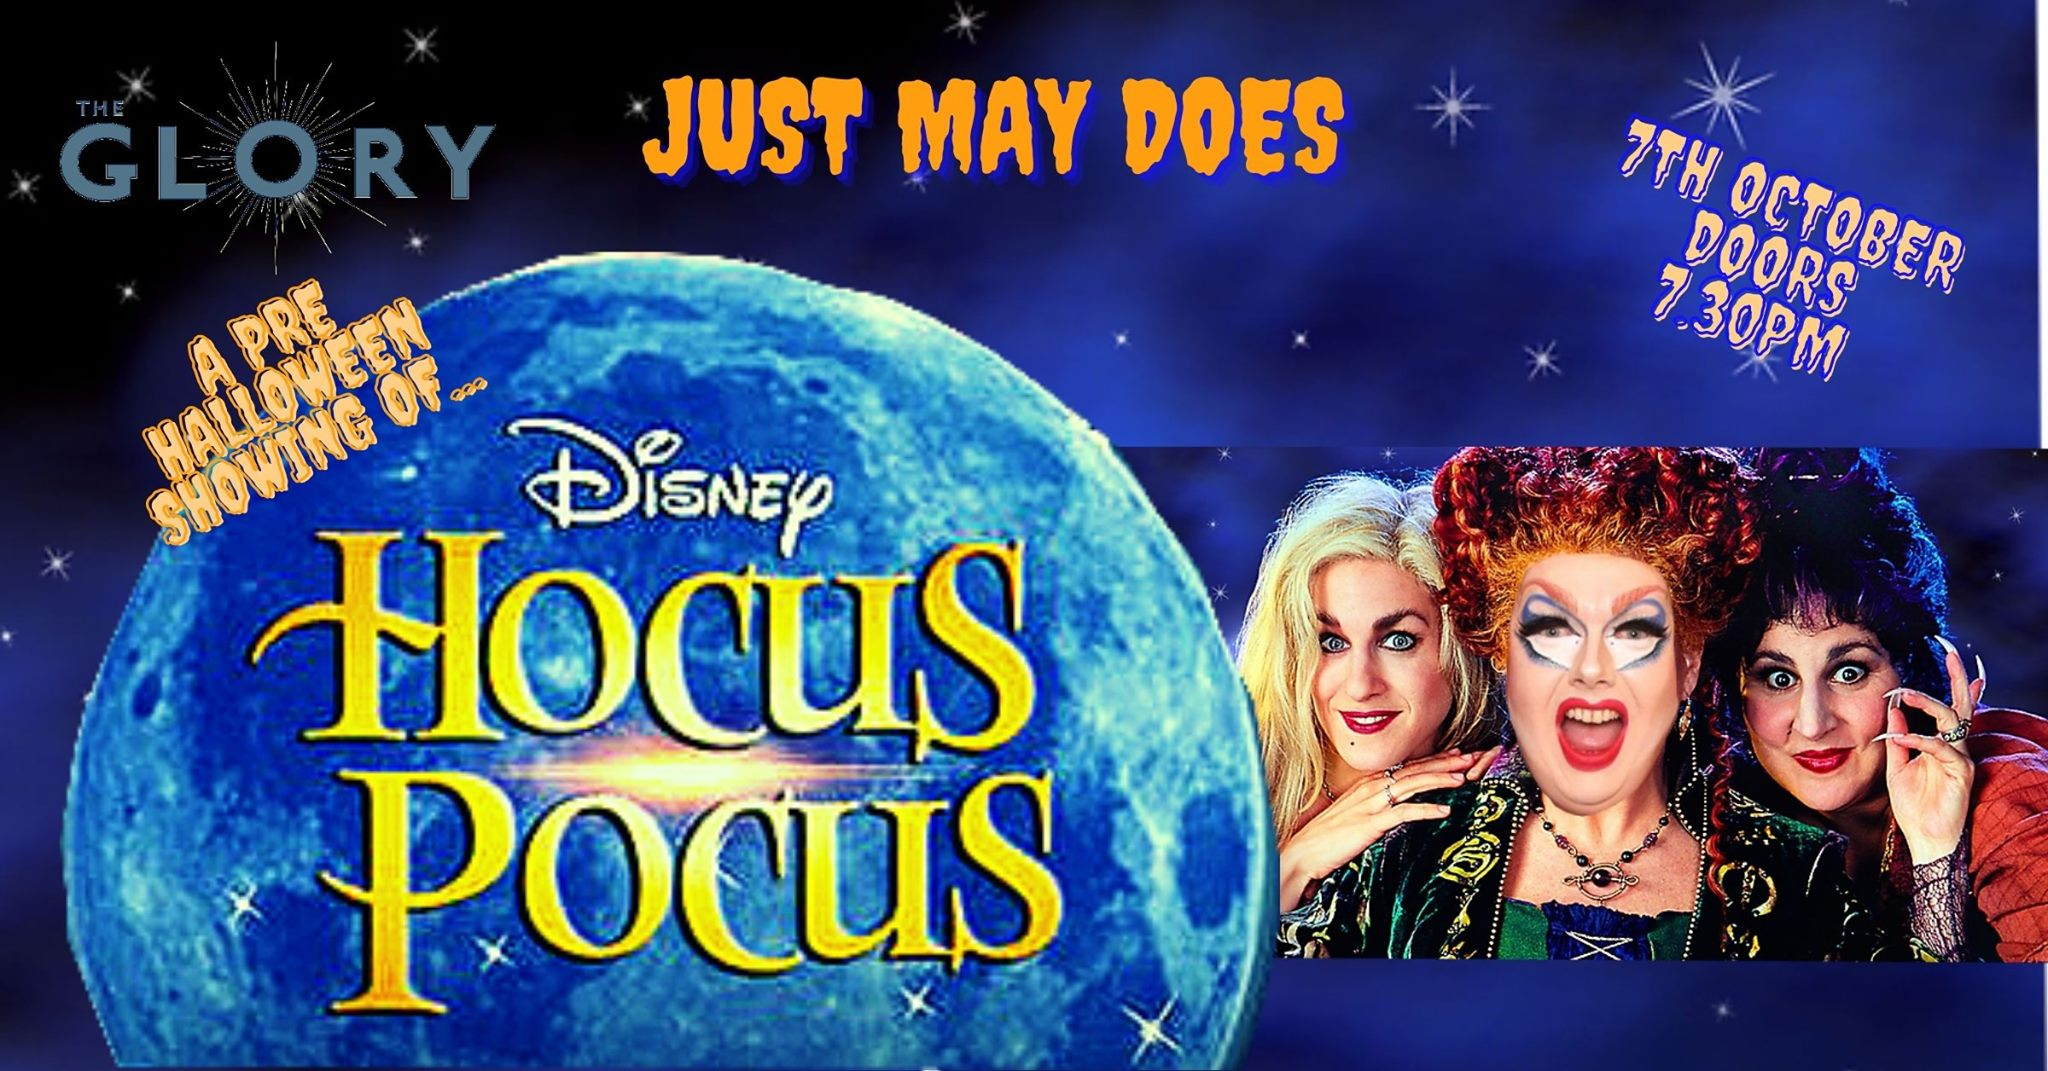 Just May does Hocus Pocus